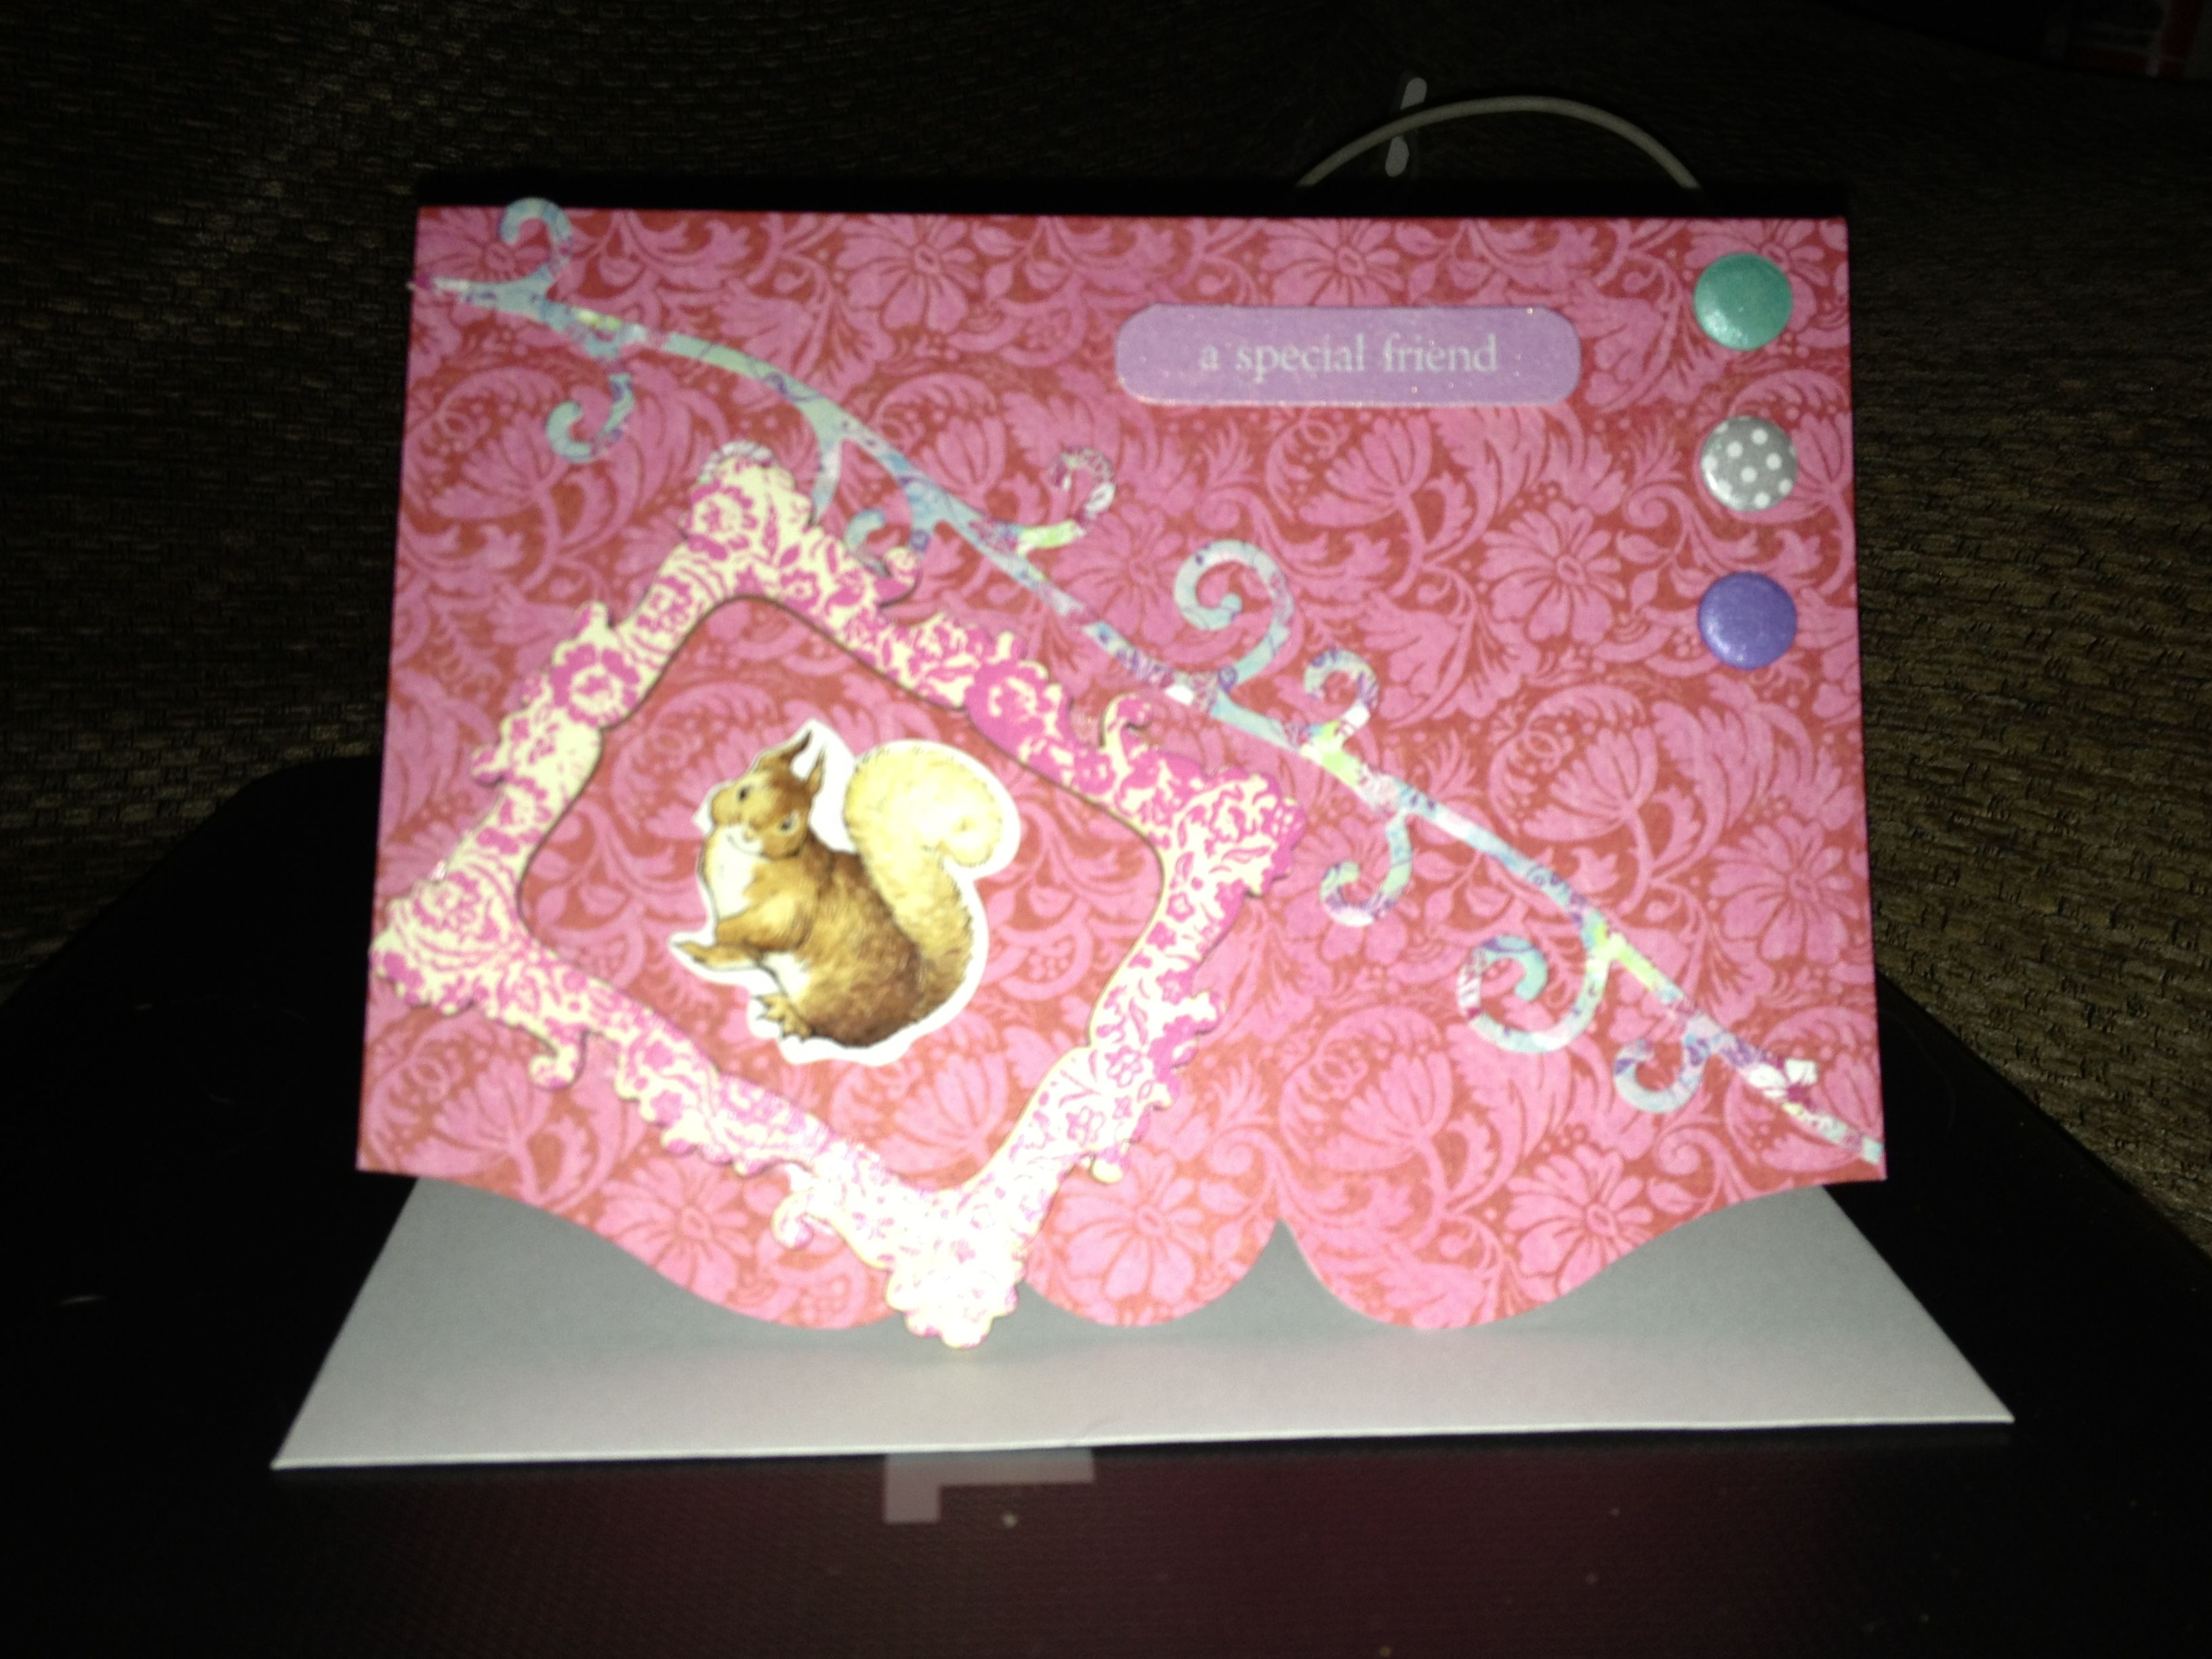 preprinted card with added embellishments with images